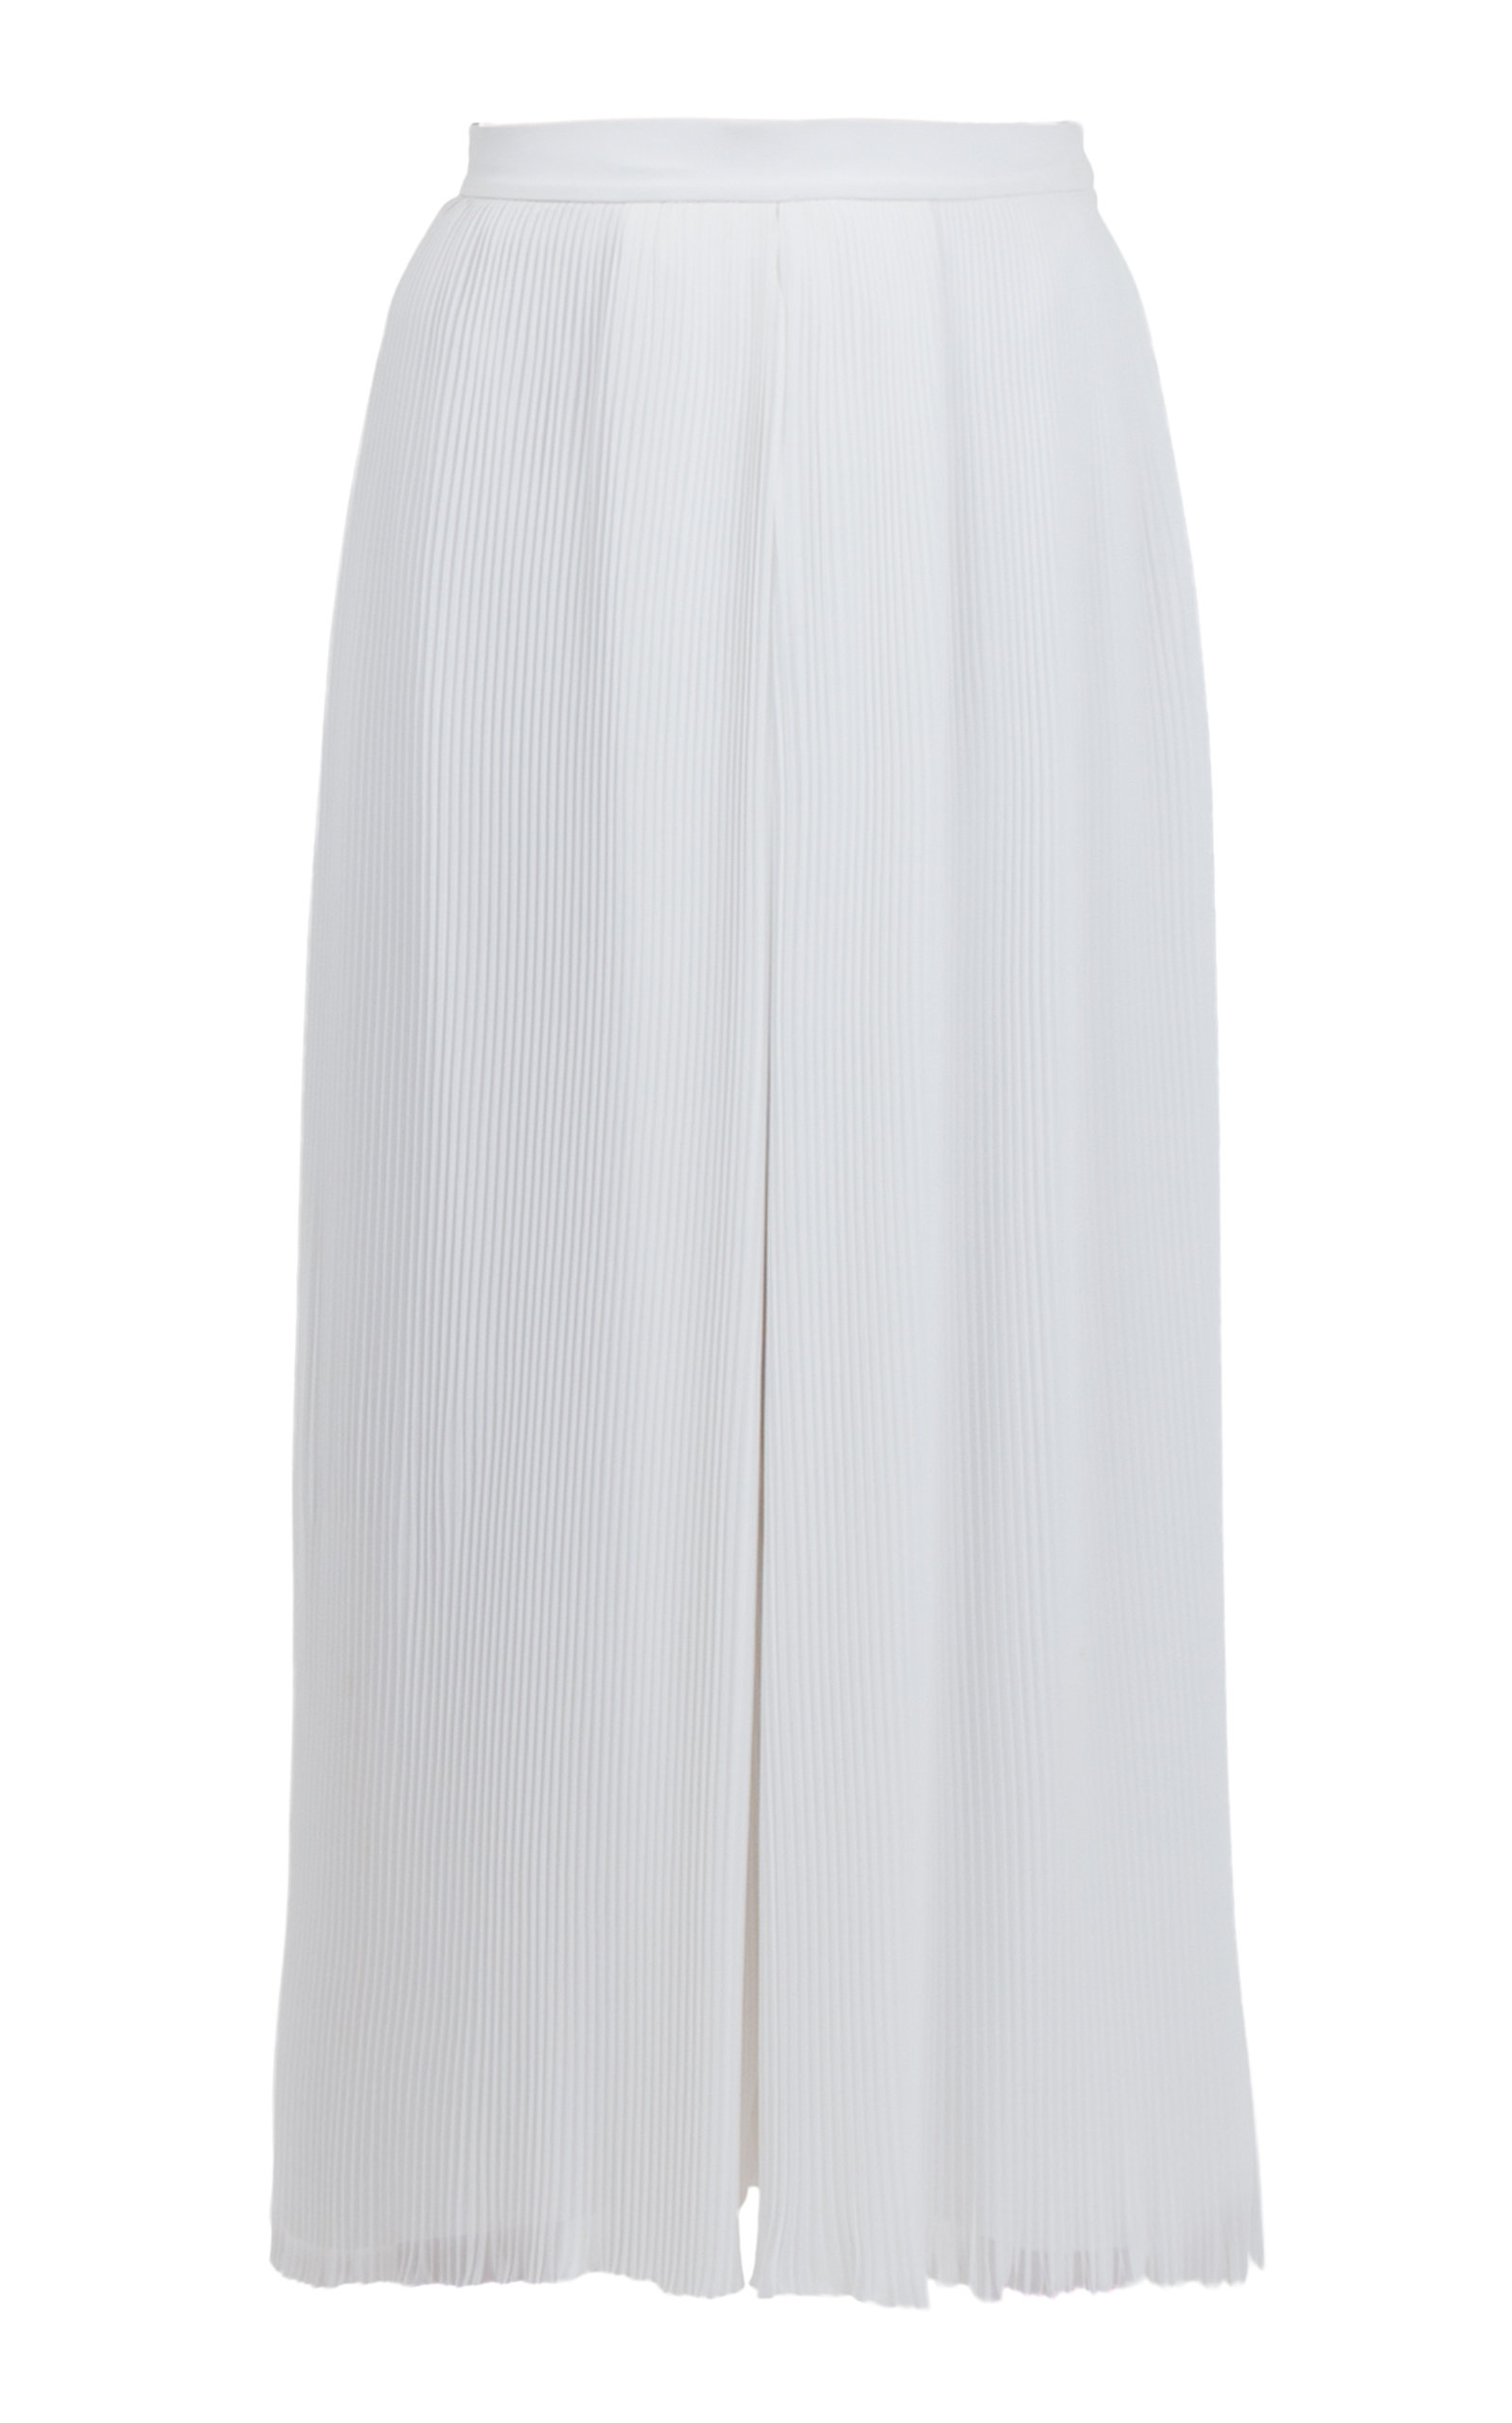 ANATOMI Dune Pleated Chiffon Square Pants in White